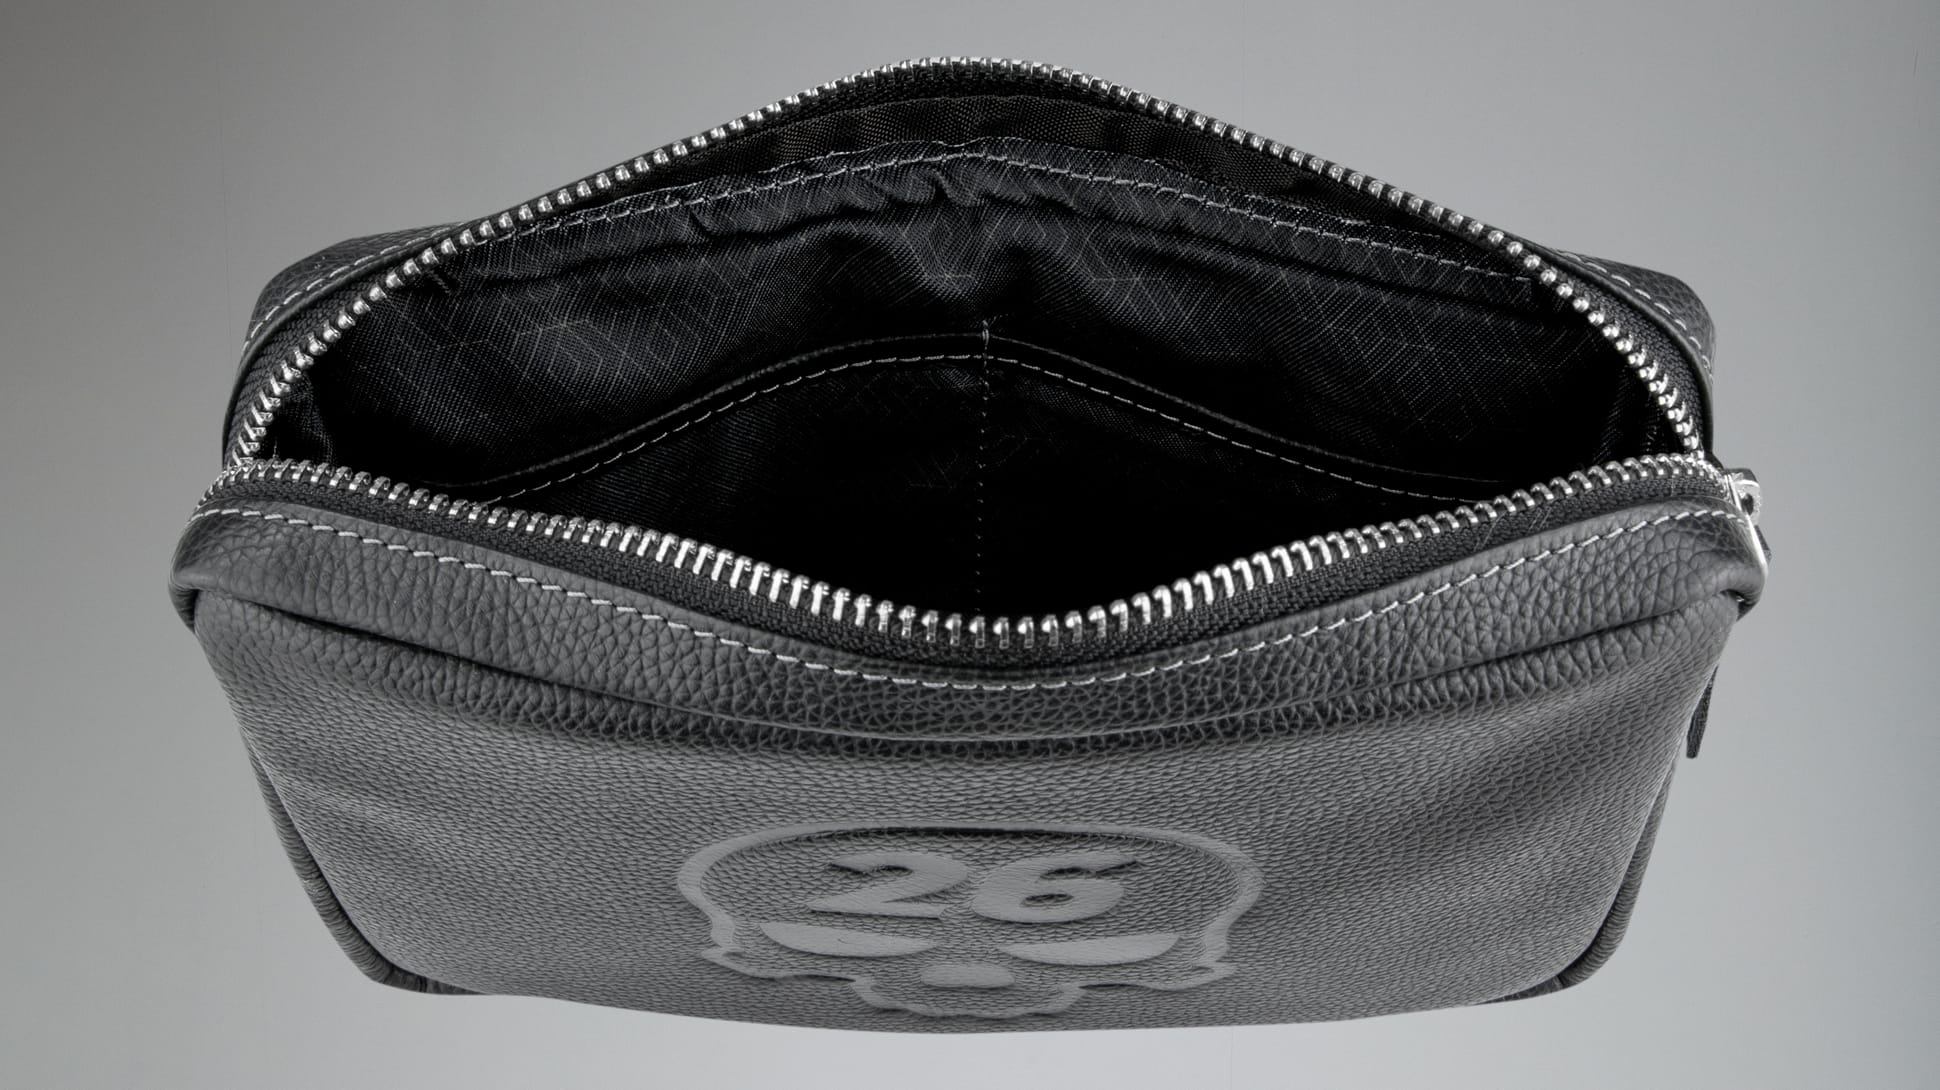 Darkness Cash Bag Image 2